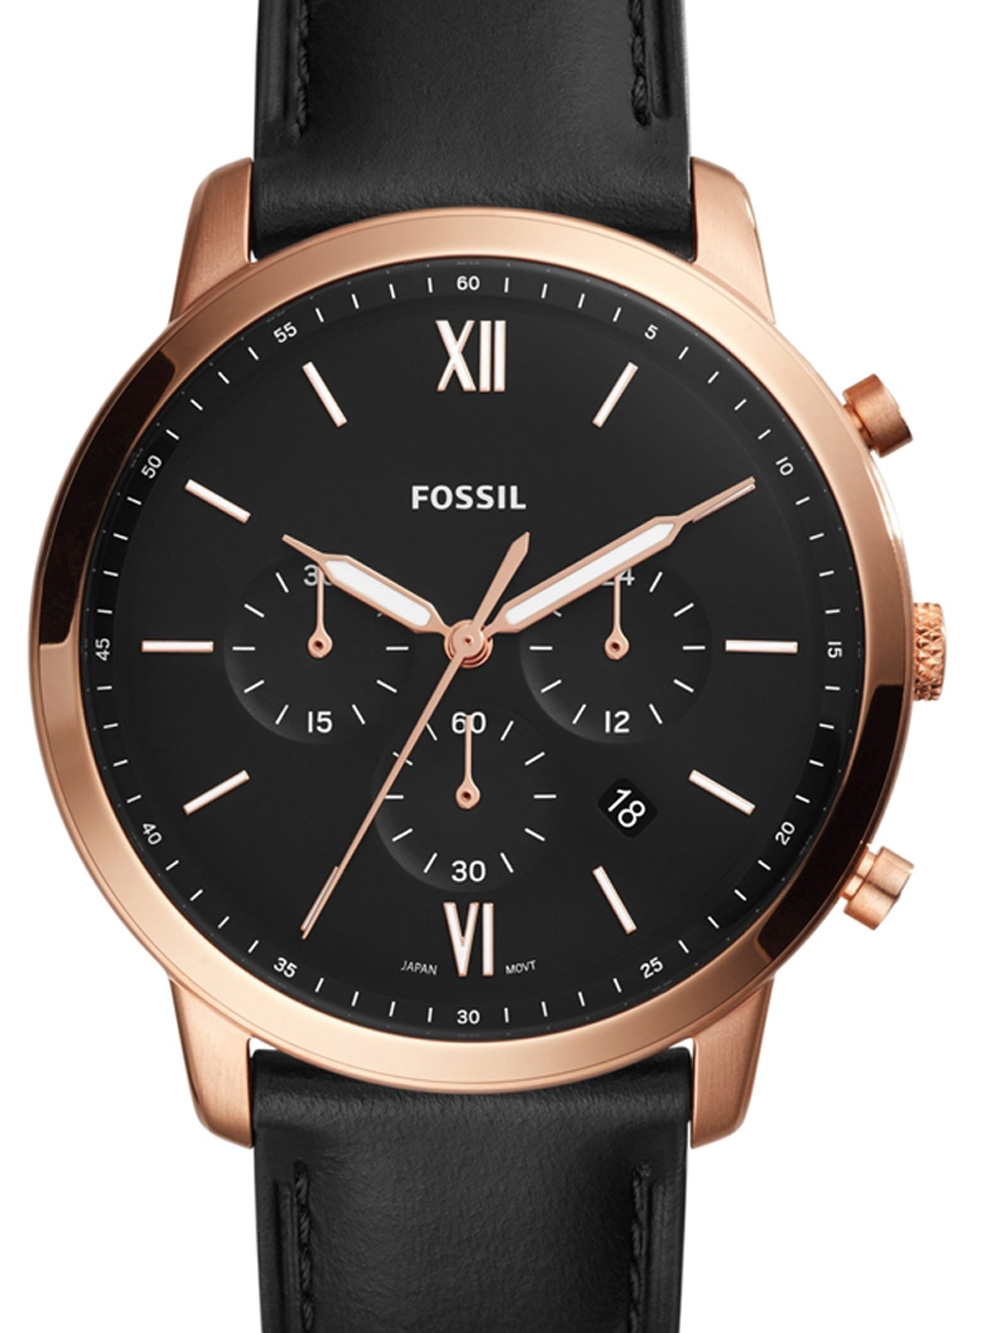 Fossil FS5381 Chronograph 44mm 5ATM